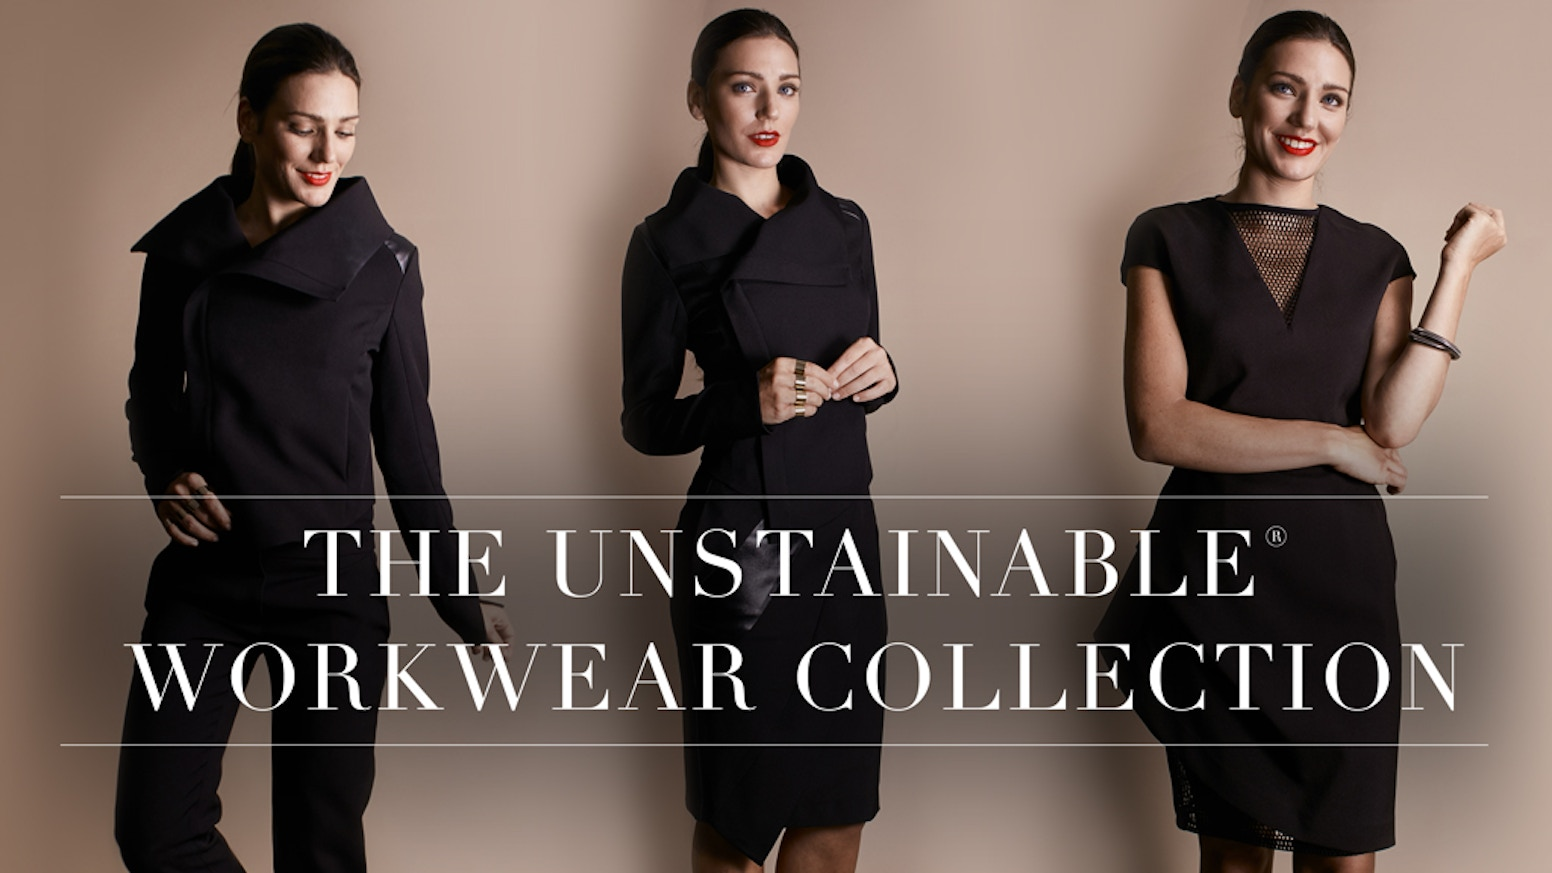 Clothes That Work: 12 Features, 10 Ways to Wear, 4 Beautiful Pieces